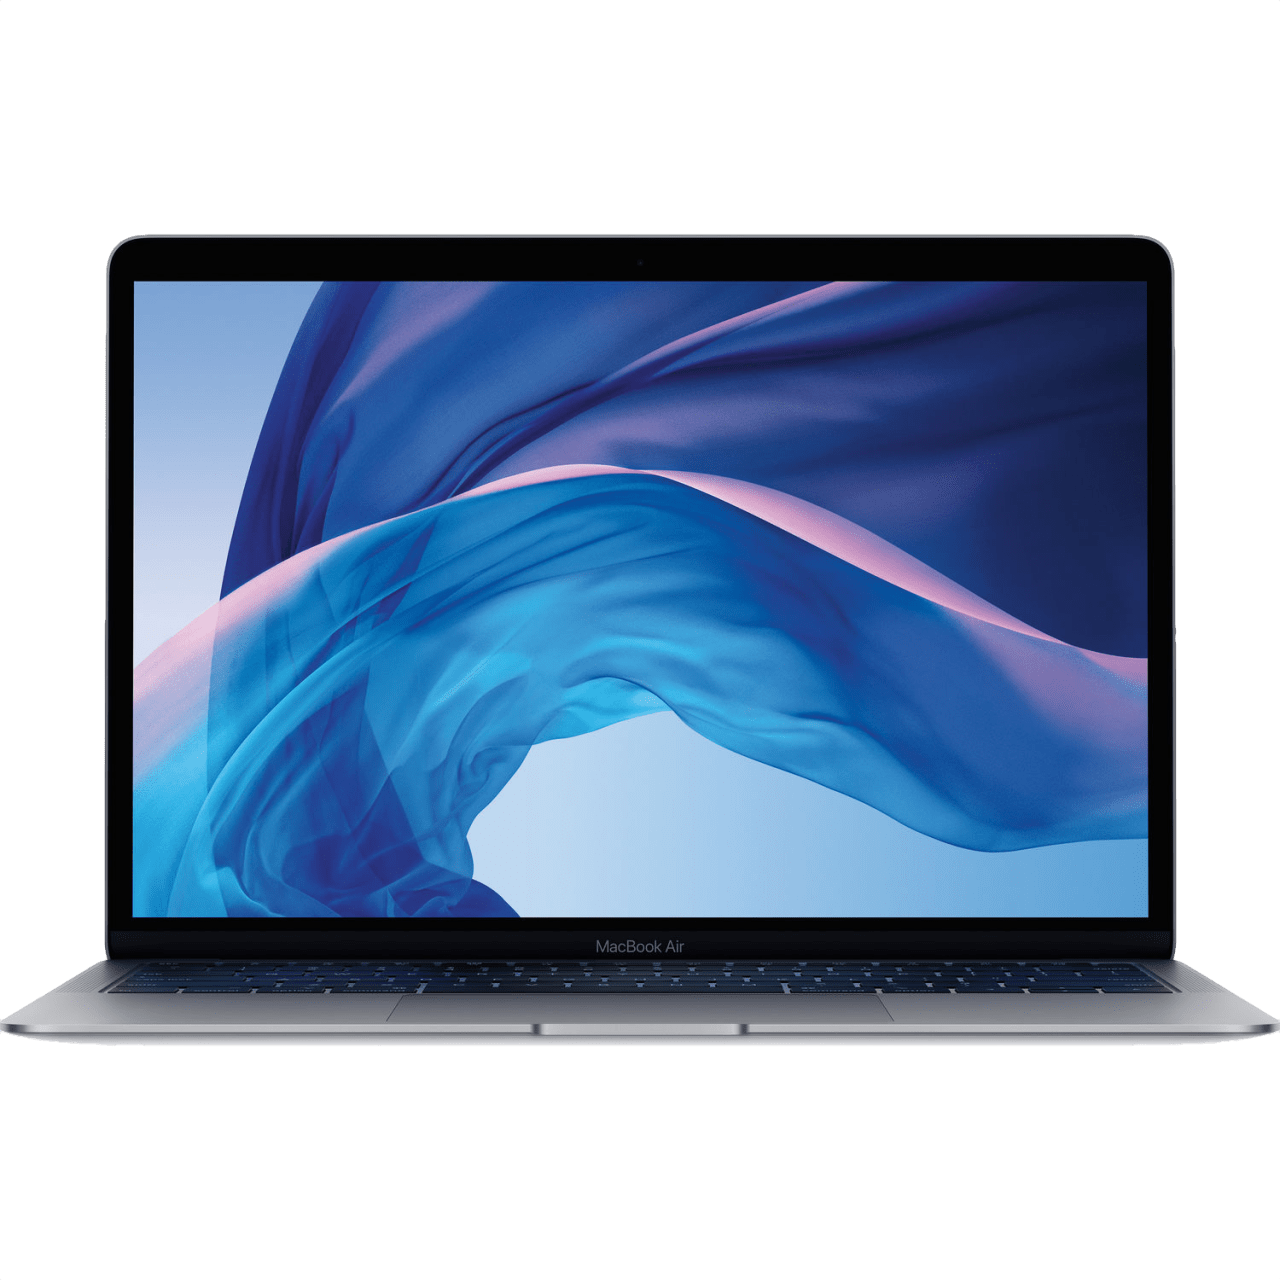 Space Grey Apple MacBook Air (Mid 2019) Laptop - Intel® Core™ i5-8210Y - 8GB - 256GB SSD - Intel® UHD Graphics 617.1